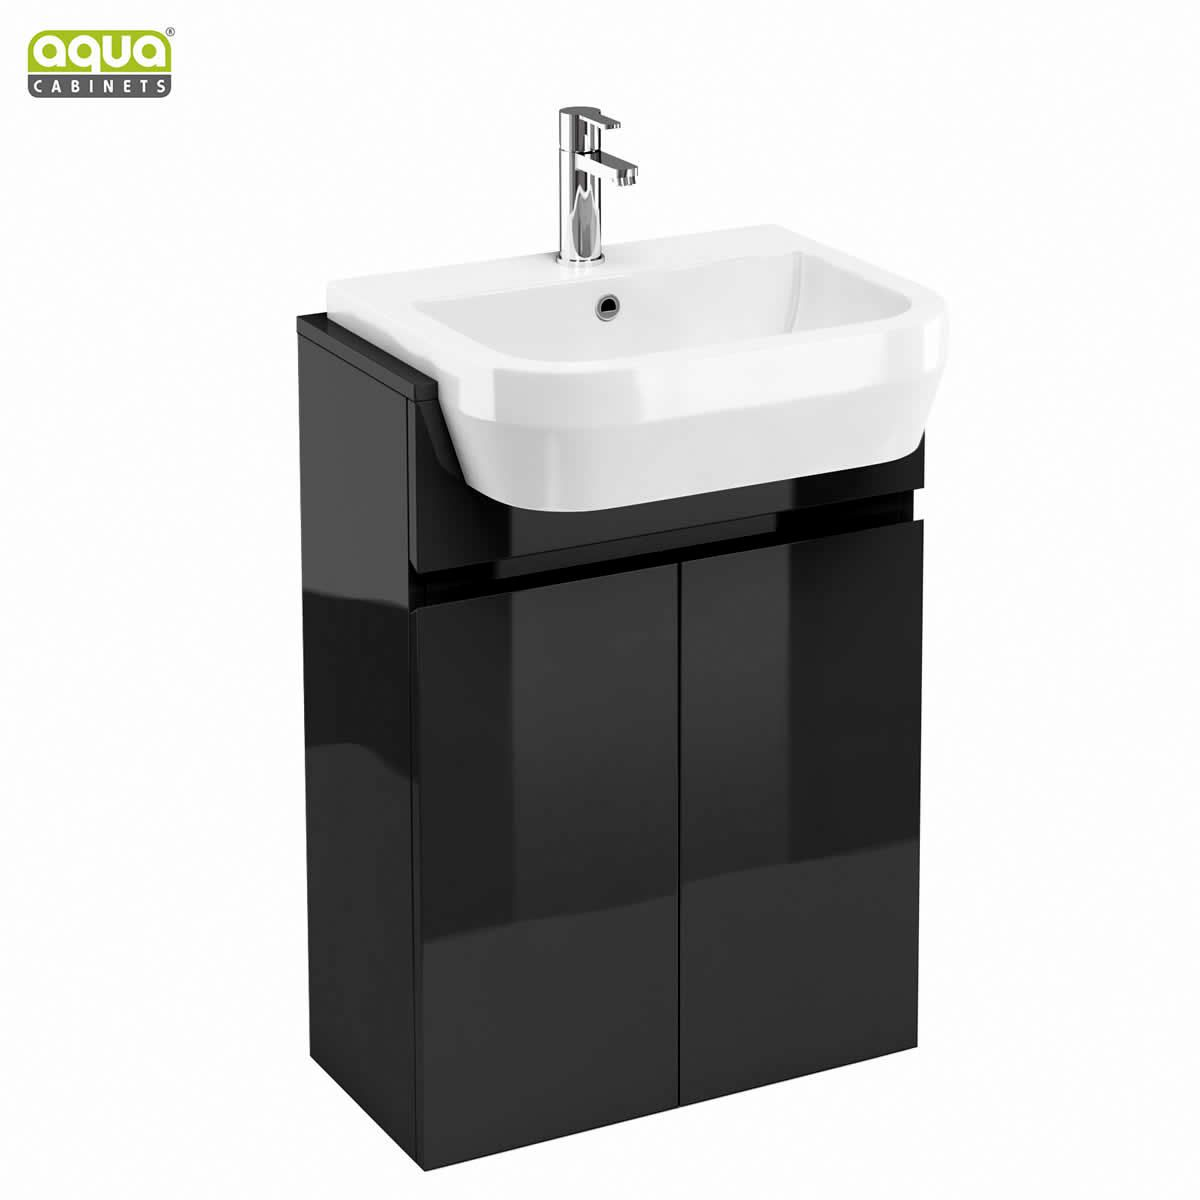 Awesome Wellness In Your Own Bathroom With High Quality Bathroom Furniture By Duravit Whirlpools, Sauna, Sinks, Bathtubs &amp More For Modern Luxury Bathrooms Shop Cheviot Ibiza DropIn Basin Self Rimming Bathroom Sink At Lowes Canada